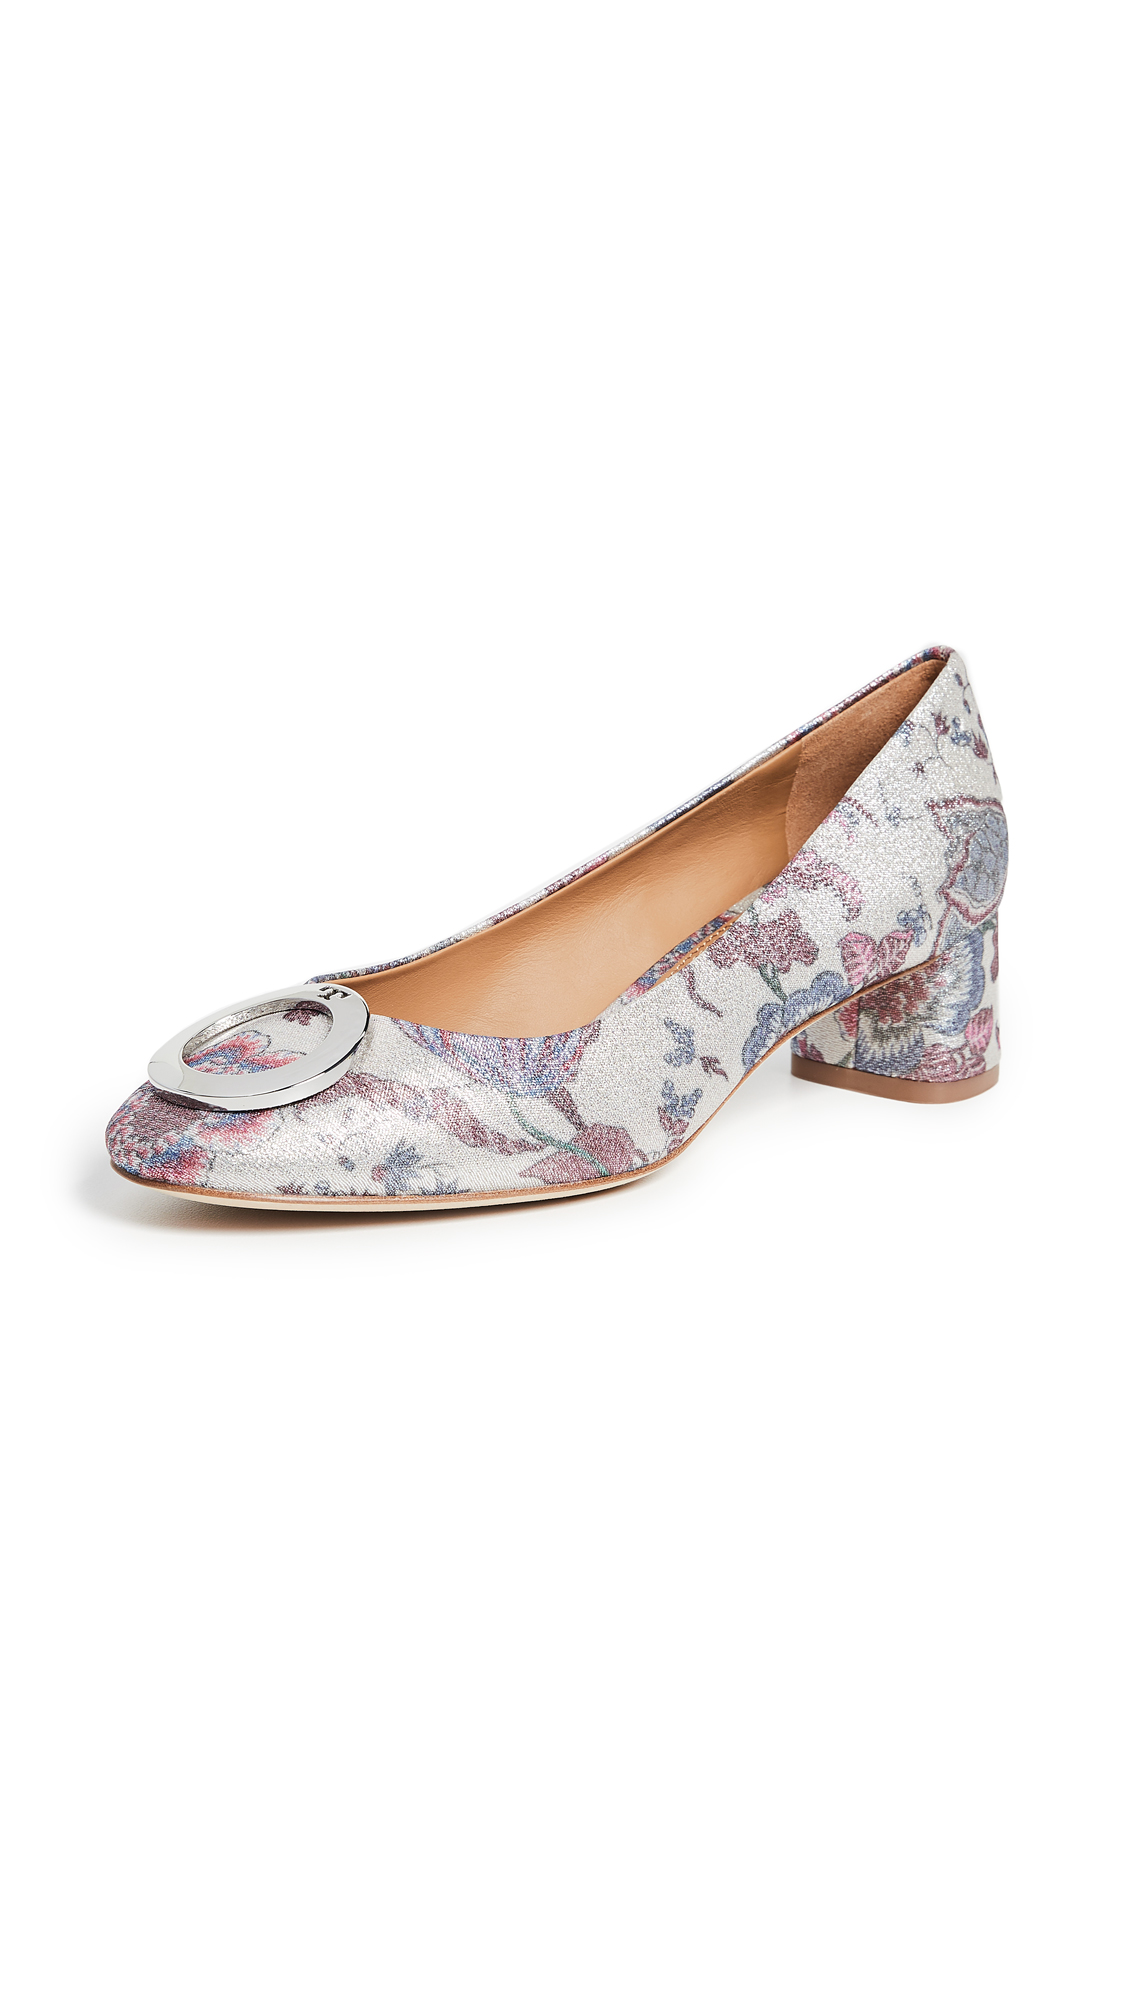 Tory Burch Caterina Pumps In Happy Times